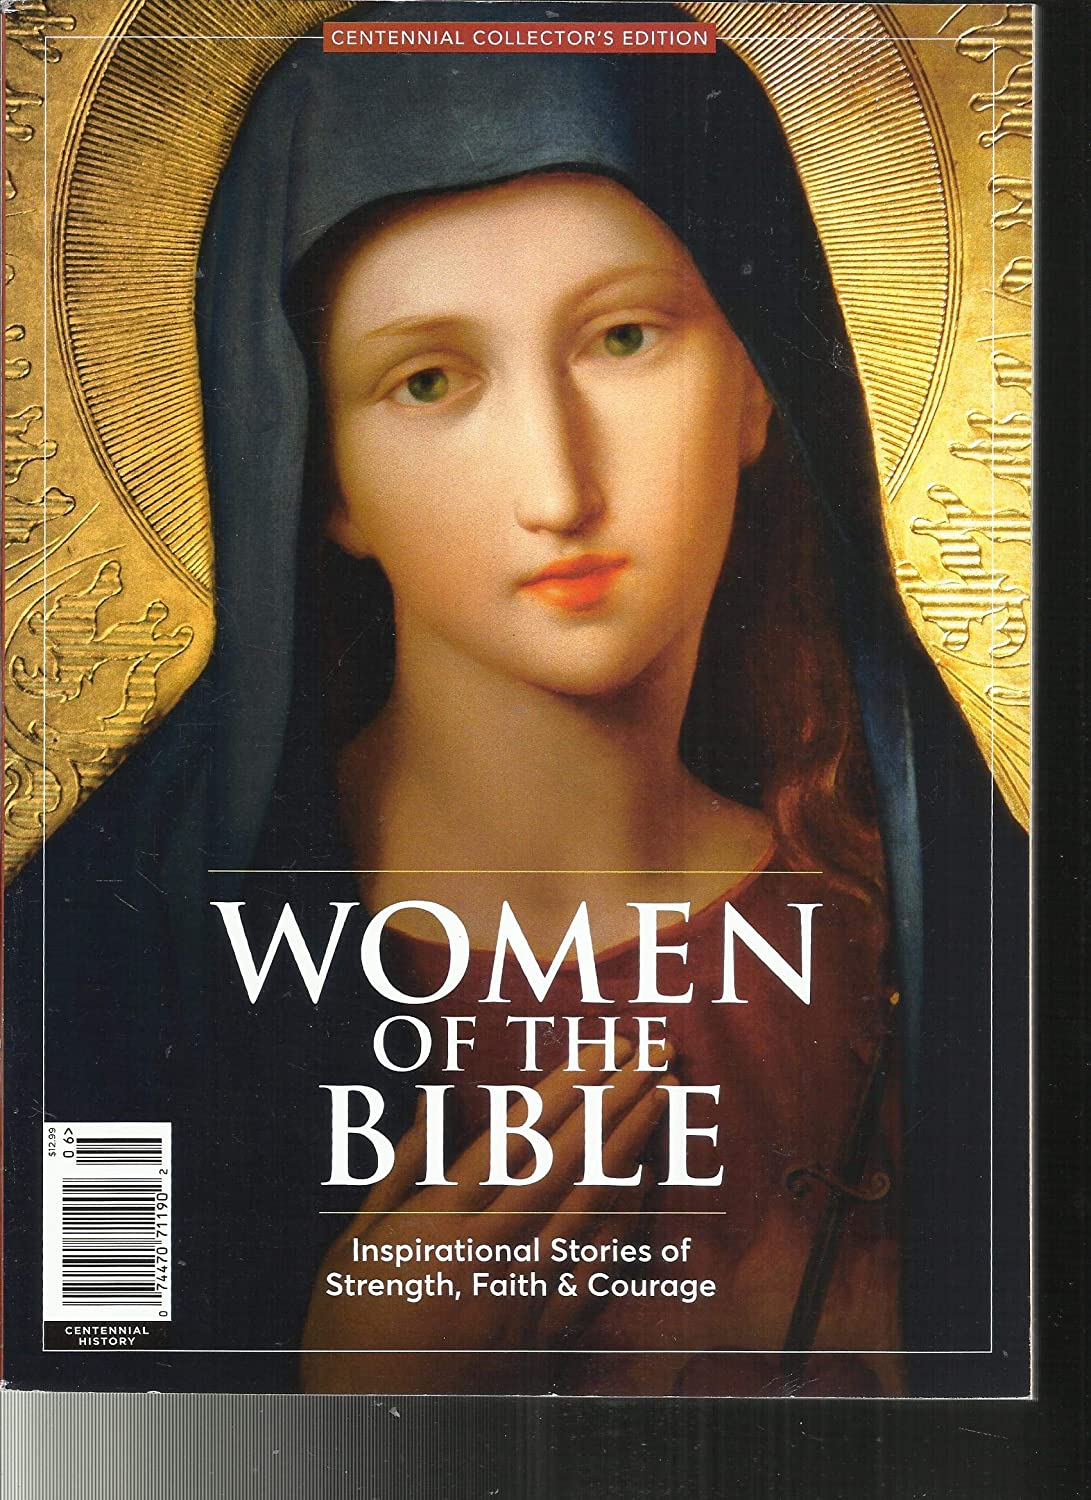 CENTENNIAL COLLECTOR'S EDITION, WOMEN OF THE BIBLE ~ s3457